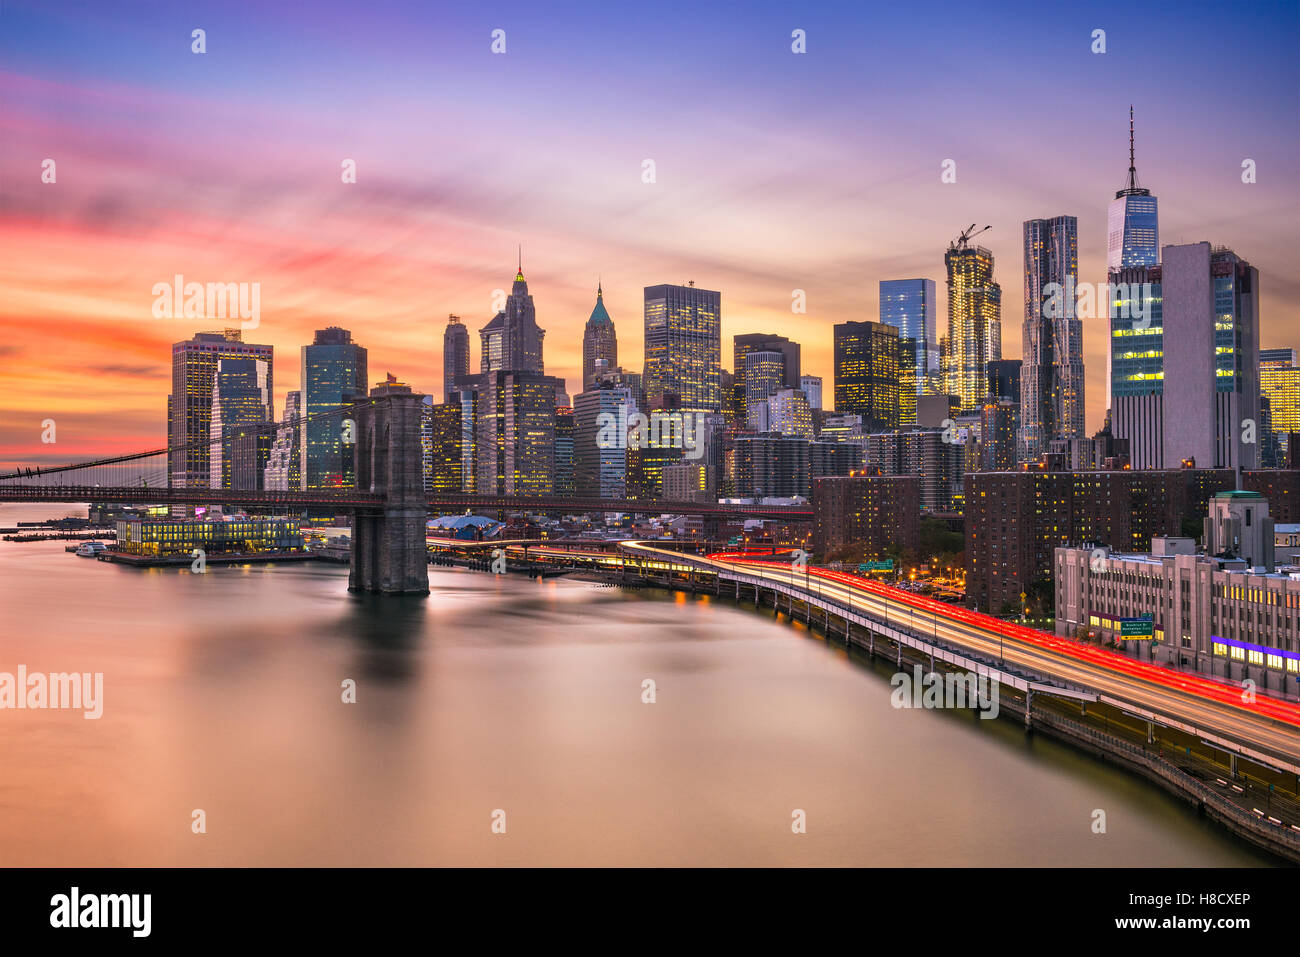 New York City financial district skyline at sunset over the East River. - Stock Image